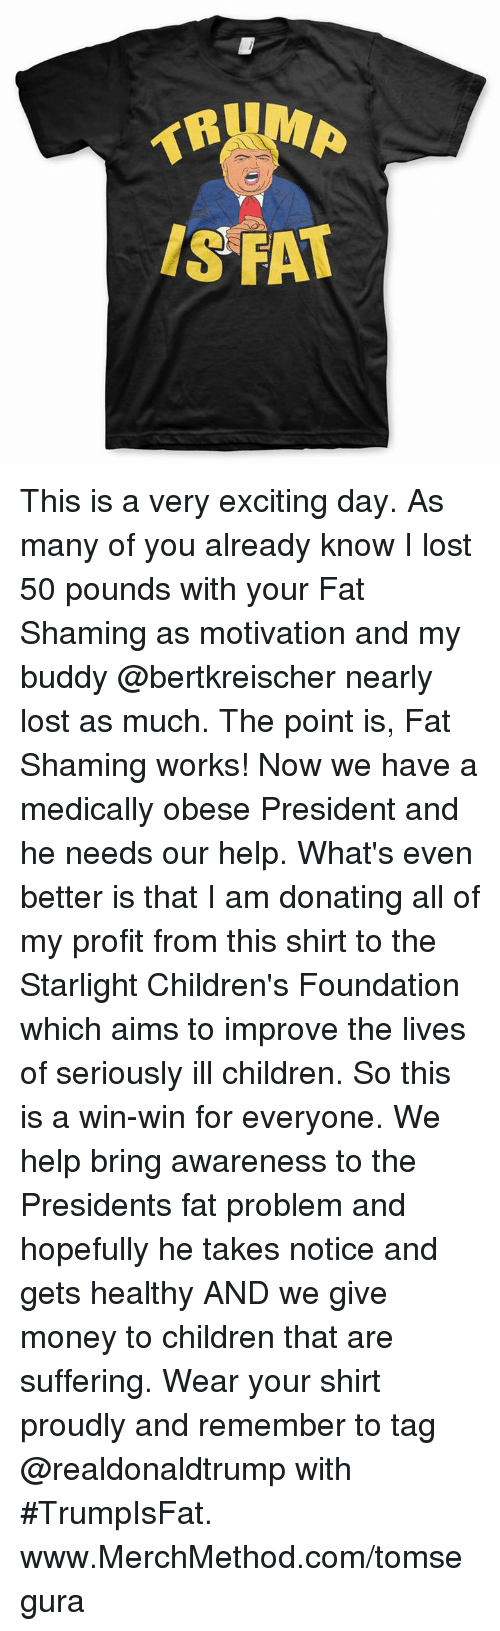 Memes, 🤖, and Foundation: IS FAT This is a very exciting day. As many of you already know I lost 50 pounds with your Fat Shaming as motivation and my buddy @bertkreischer nearly lost as much. The point is, Fat Shaming works! Now we have a medically obese President and he needs our help. What's even better is that I am donating all of my profit from this shirt to the Starlight Children's Foundation which aims to improve the lives of seriously ill children. So this is a win-win for everyone.  We help bring awareness to the Presidents fat problem and hopefully he takes notice and gets healthy AND we give money to children that are suffering. Wear your shirt proudly and remember to tag @realdonaldtrump with #TrumpIsFat. www.MerchMethod.com/tomsegura